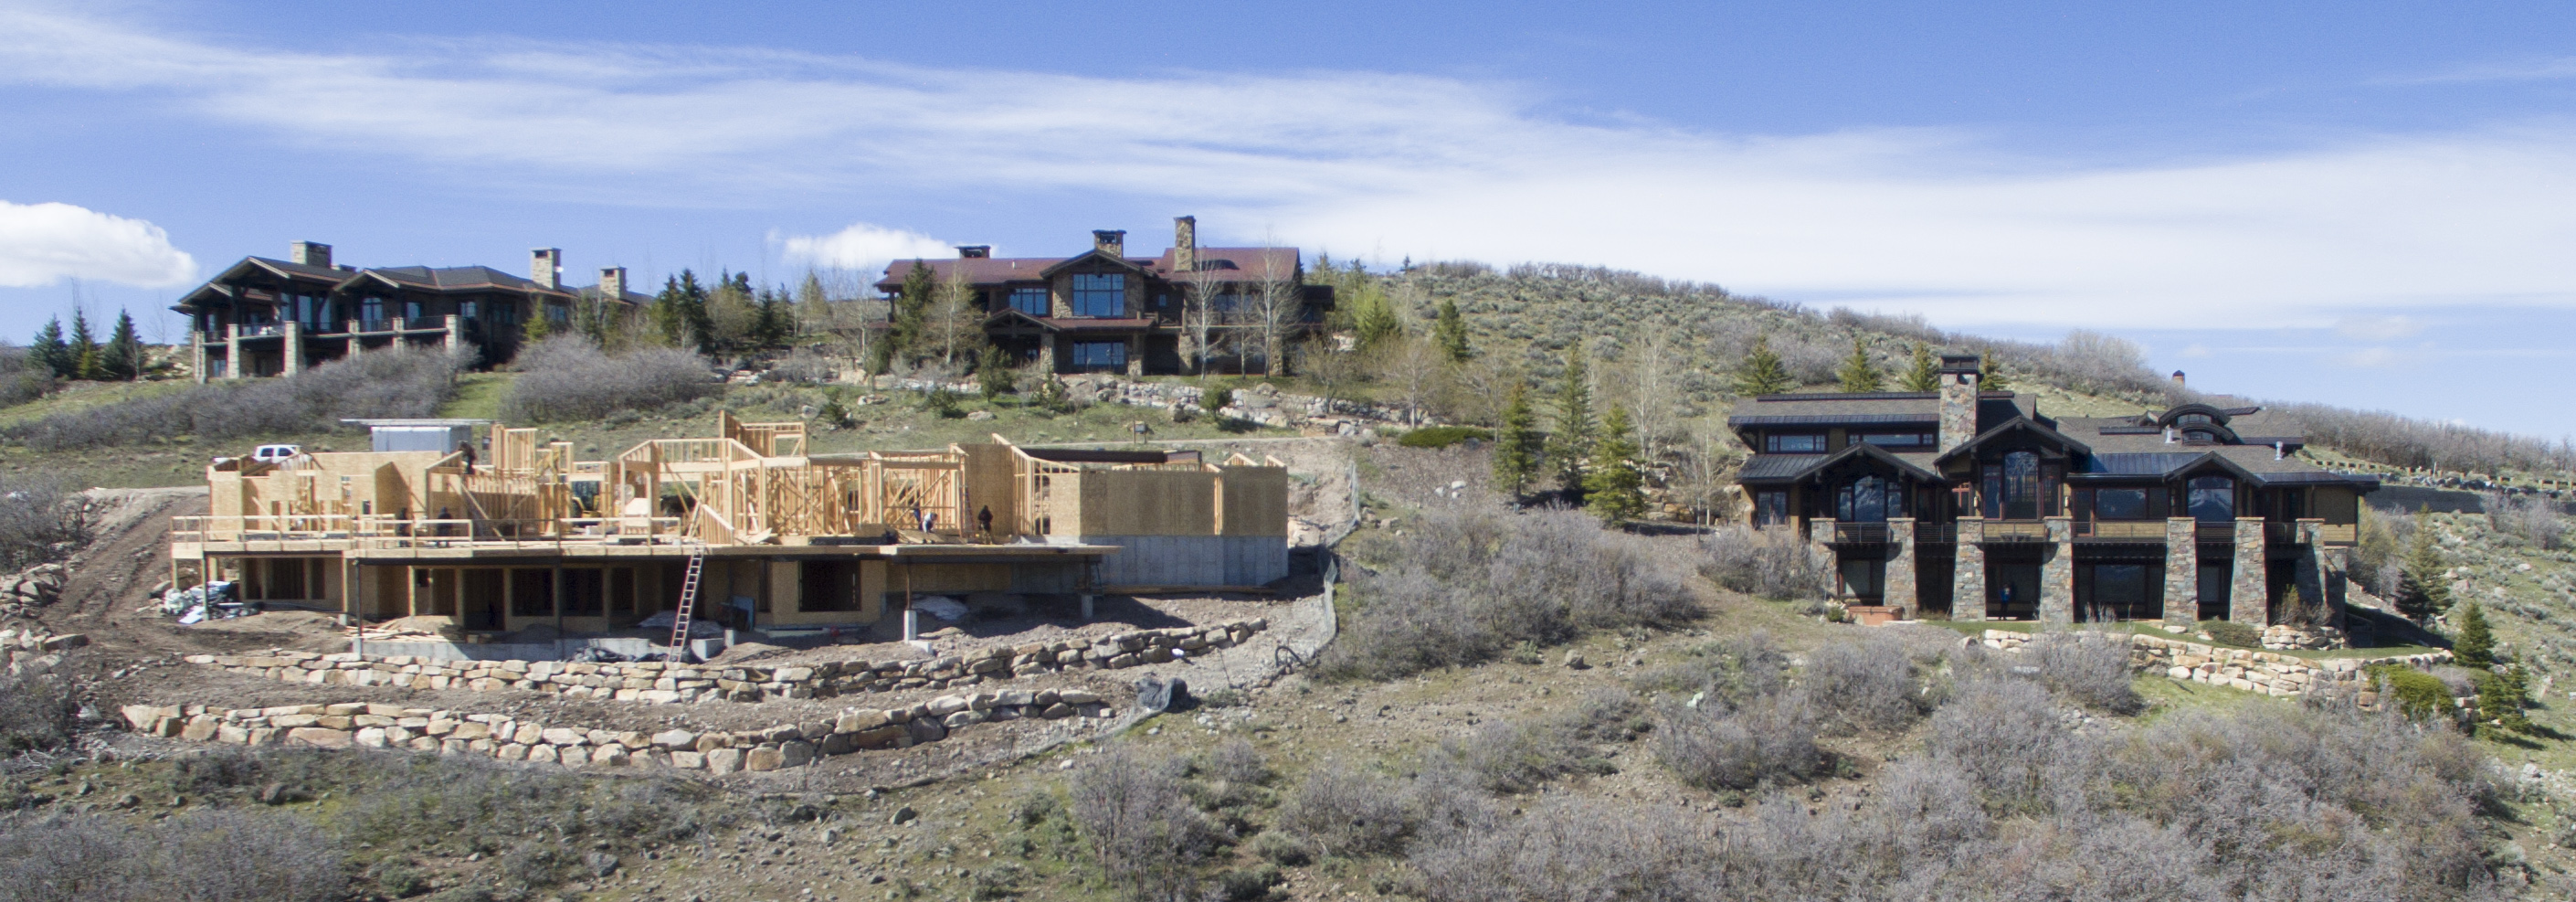 New Construction in Promontory